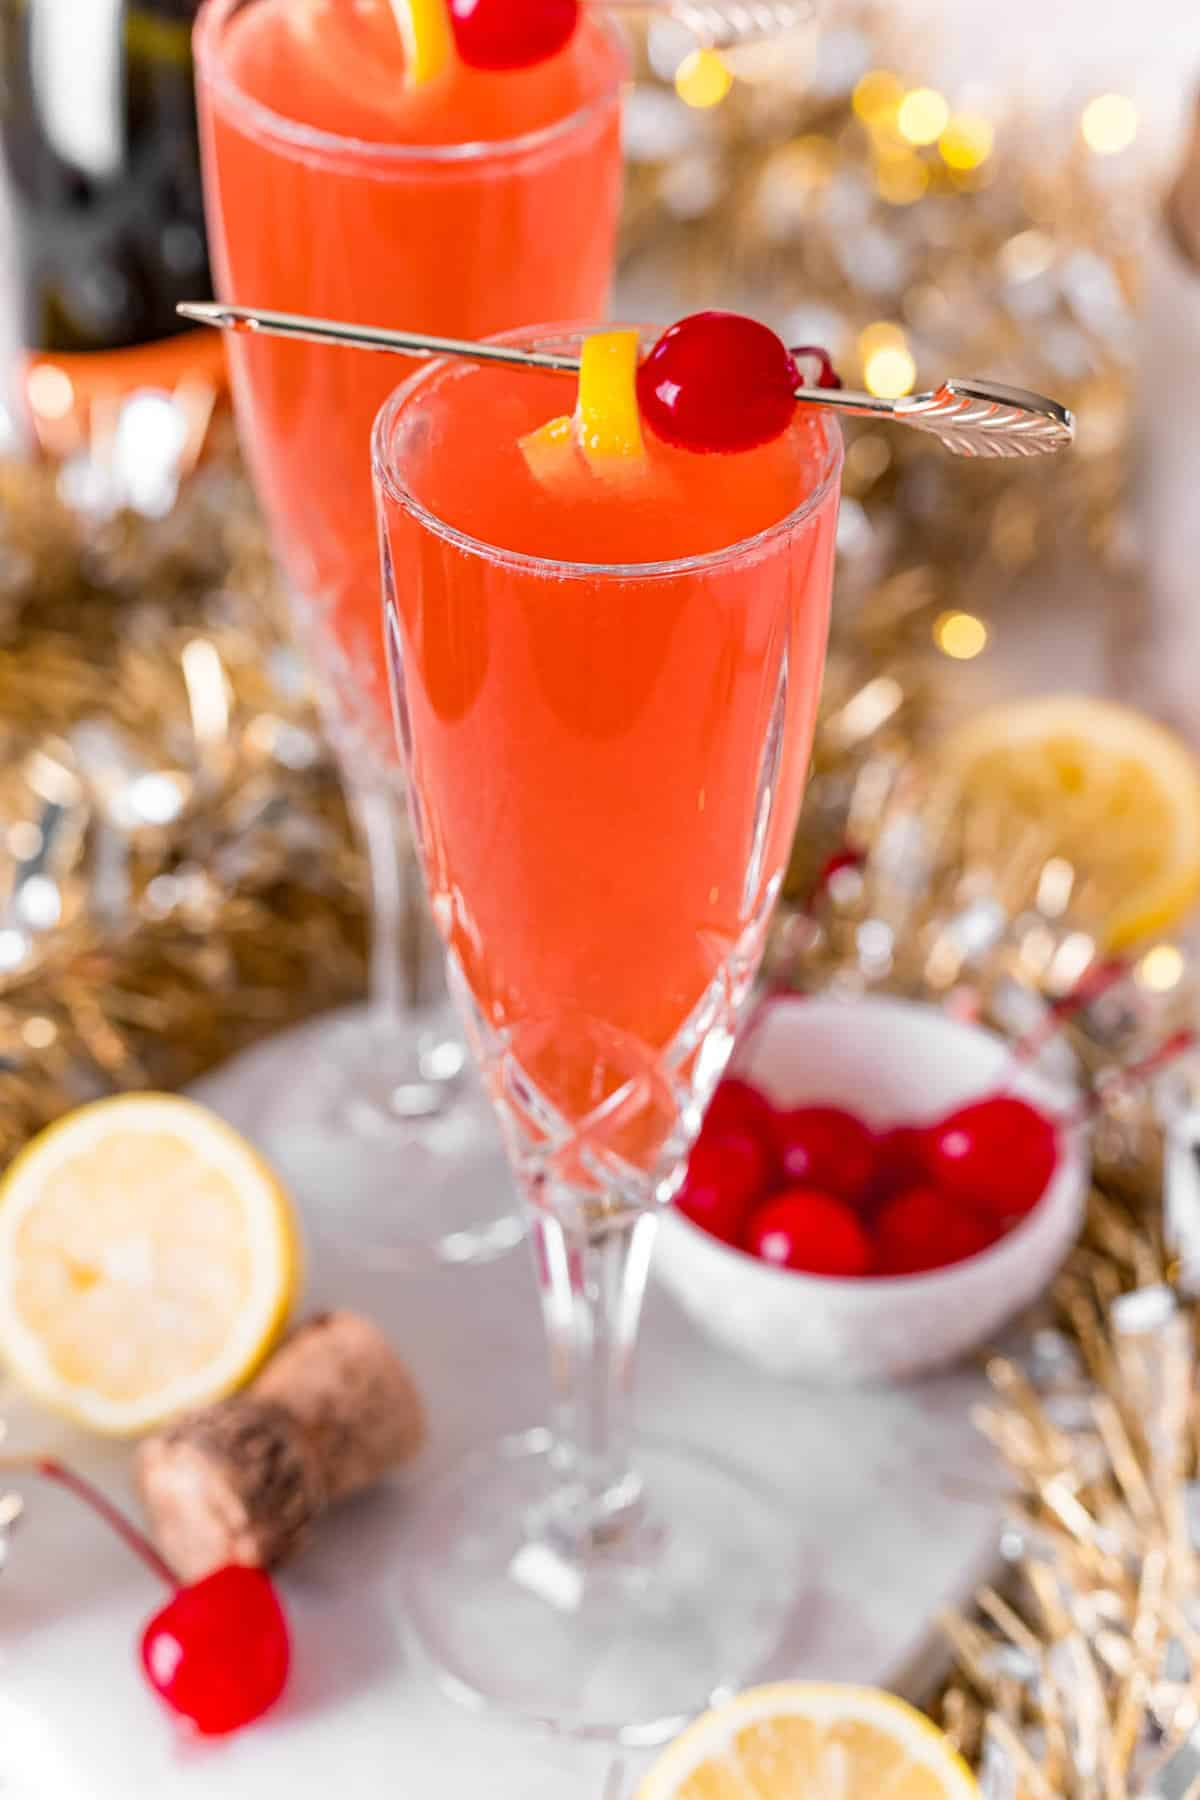 Cherry french 75 garnished with cherry and lemon peel.